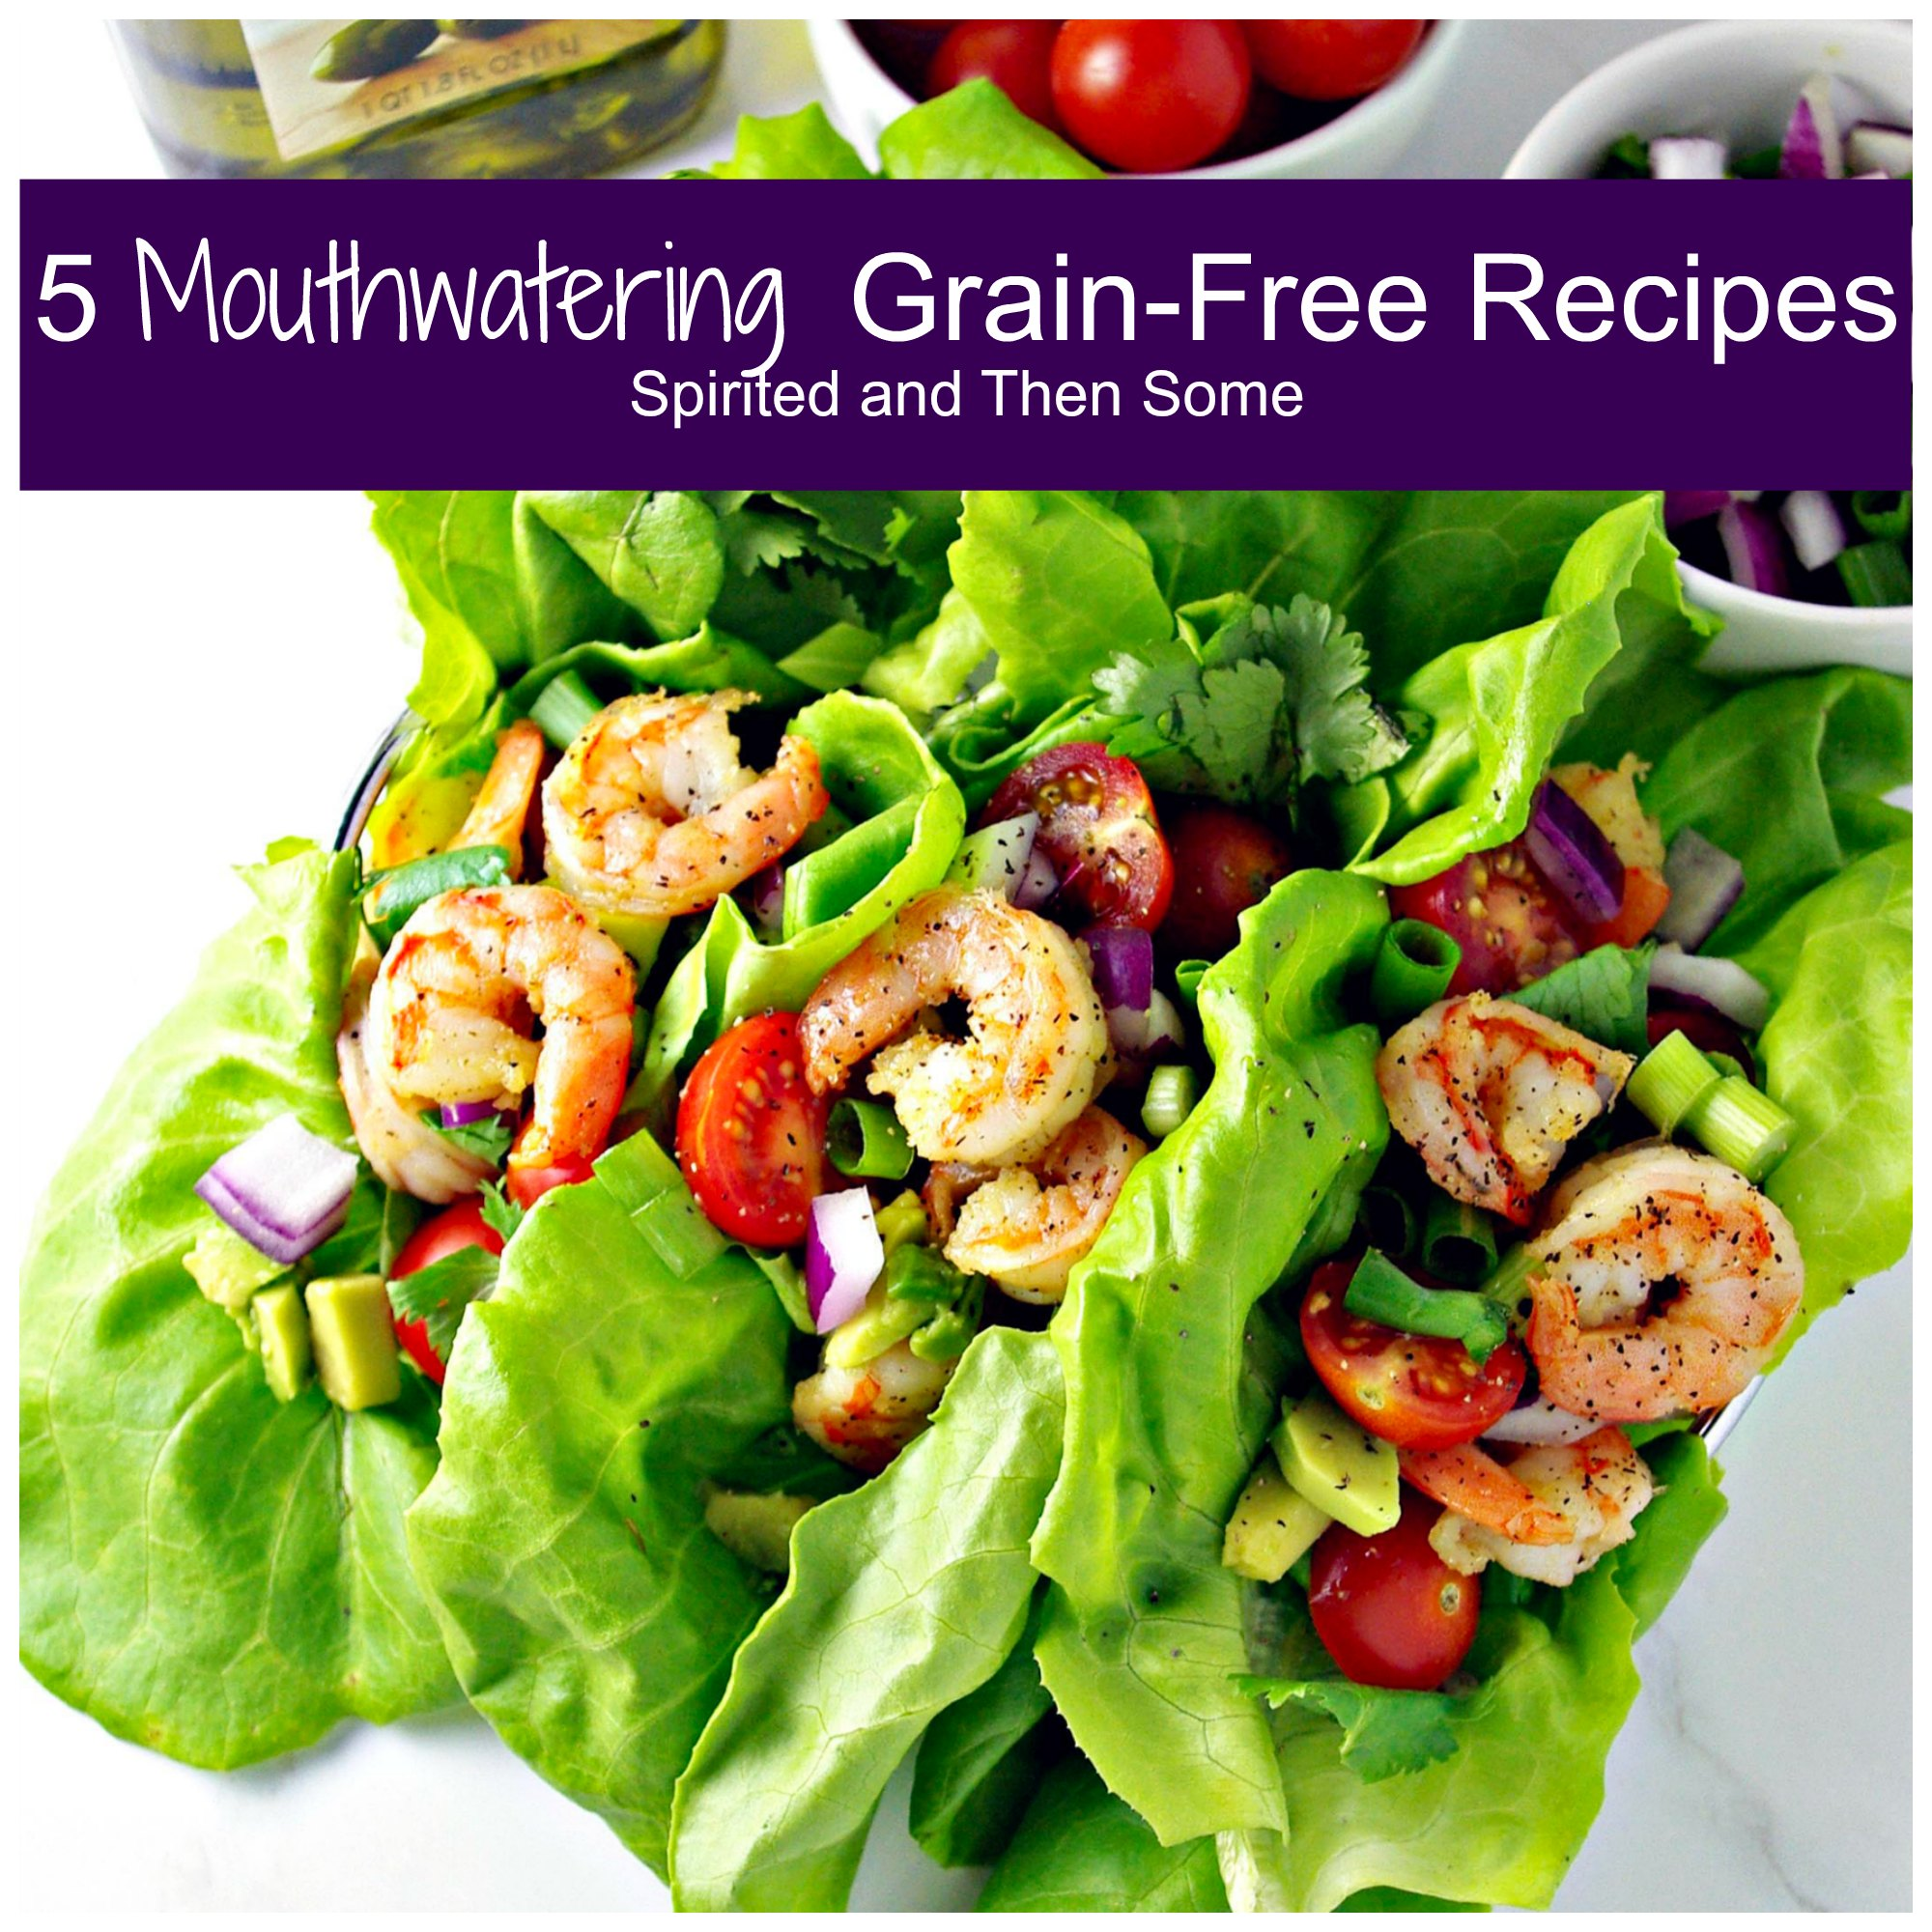 5 Mouthwatering Grain-Free Recipes for dinner! Quick and easy! | spiritedandthensome.com